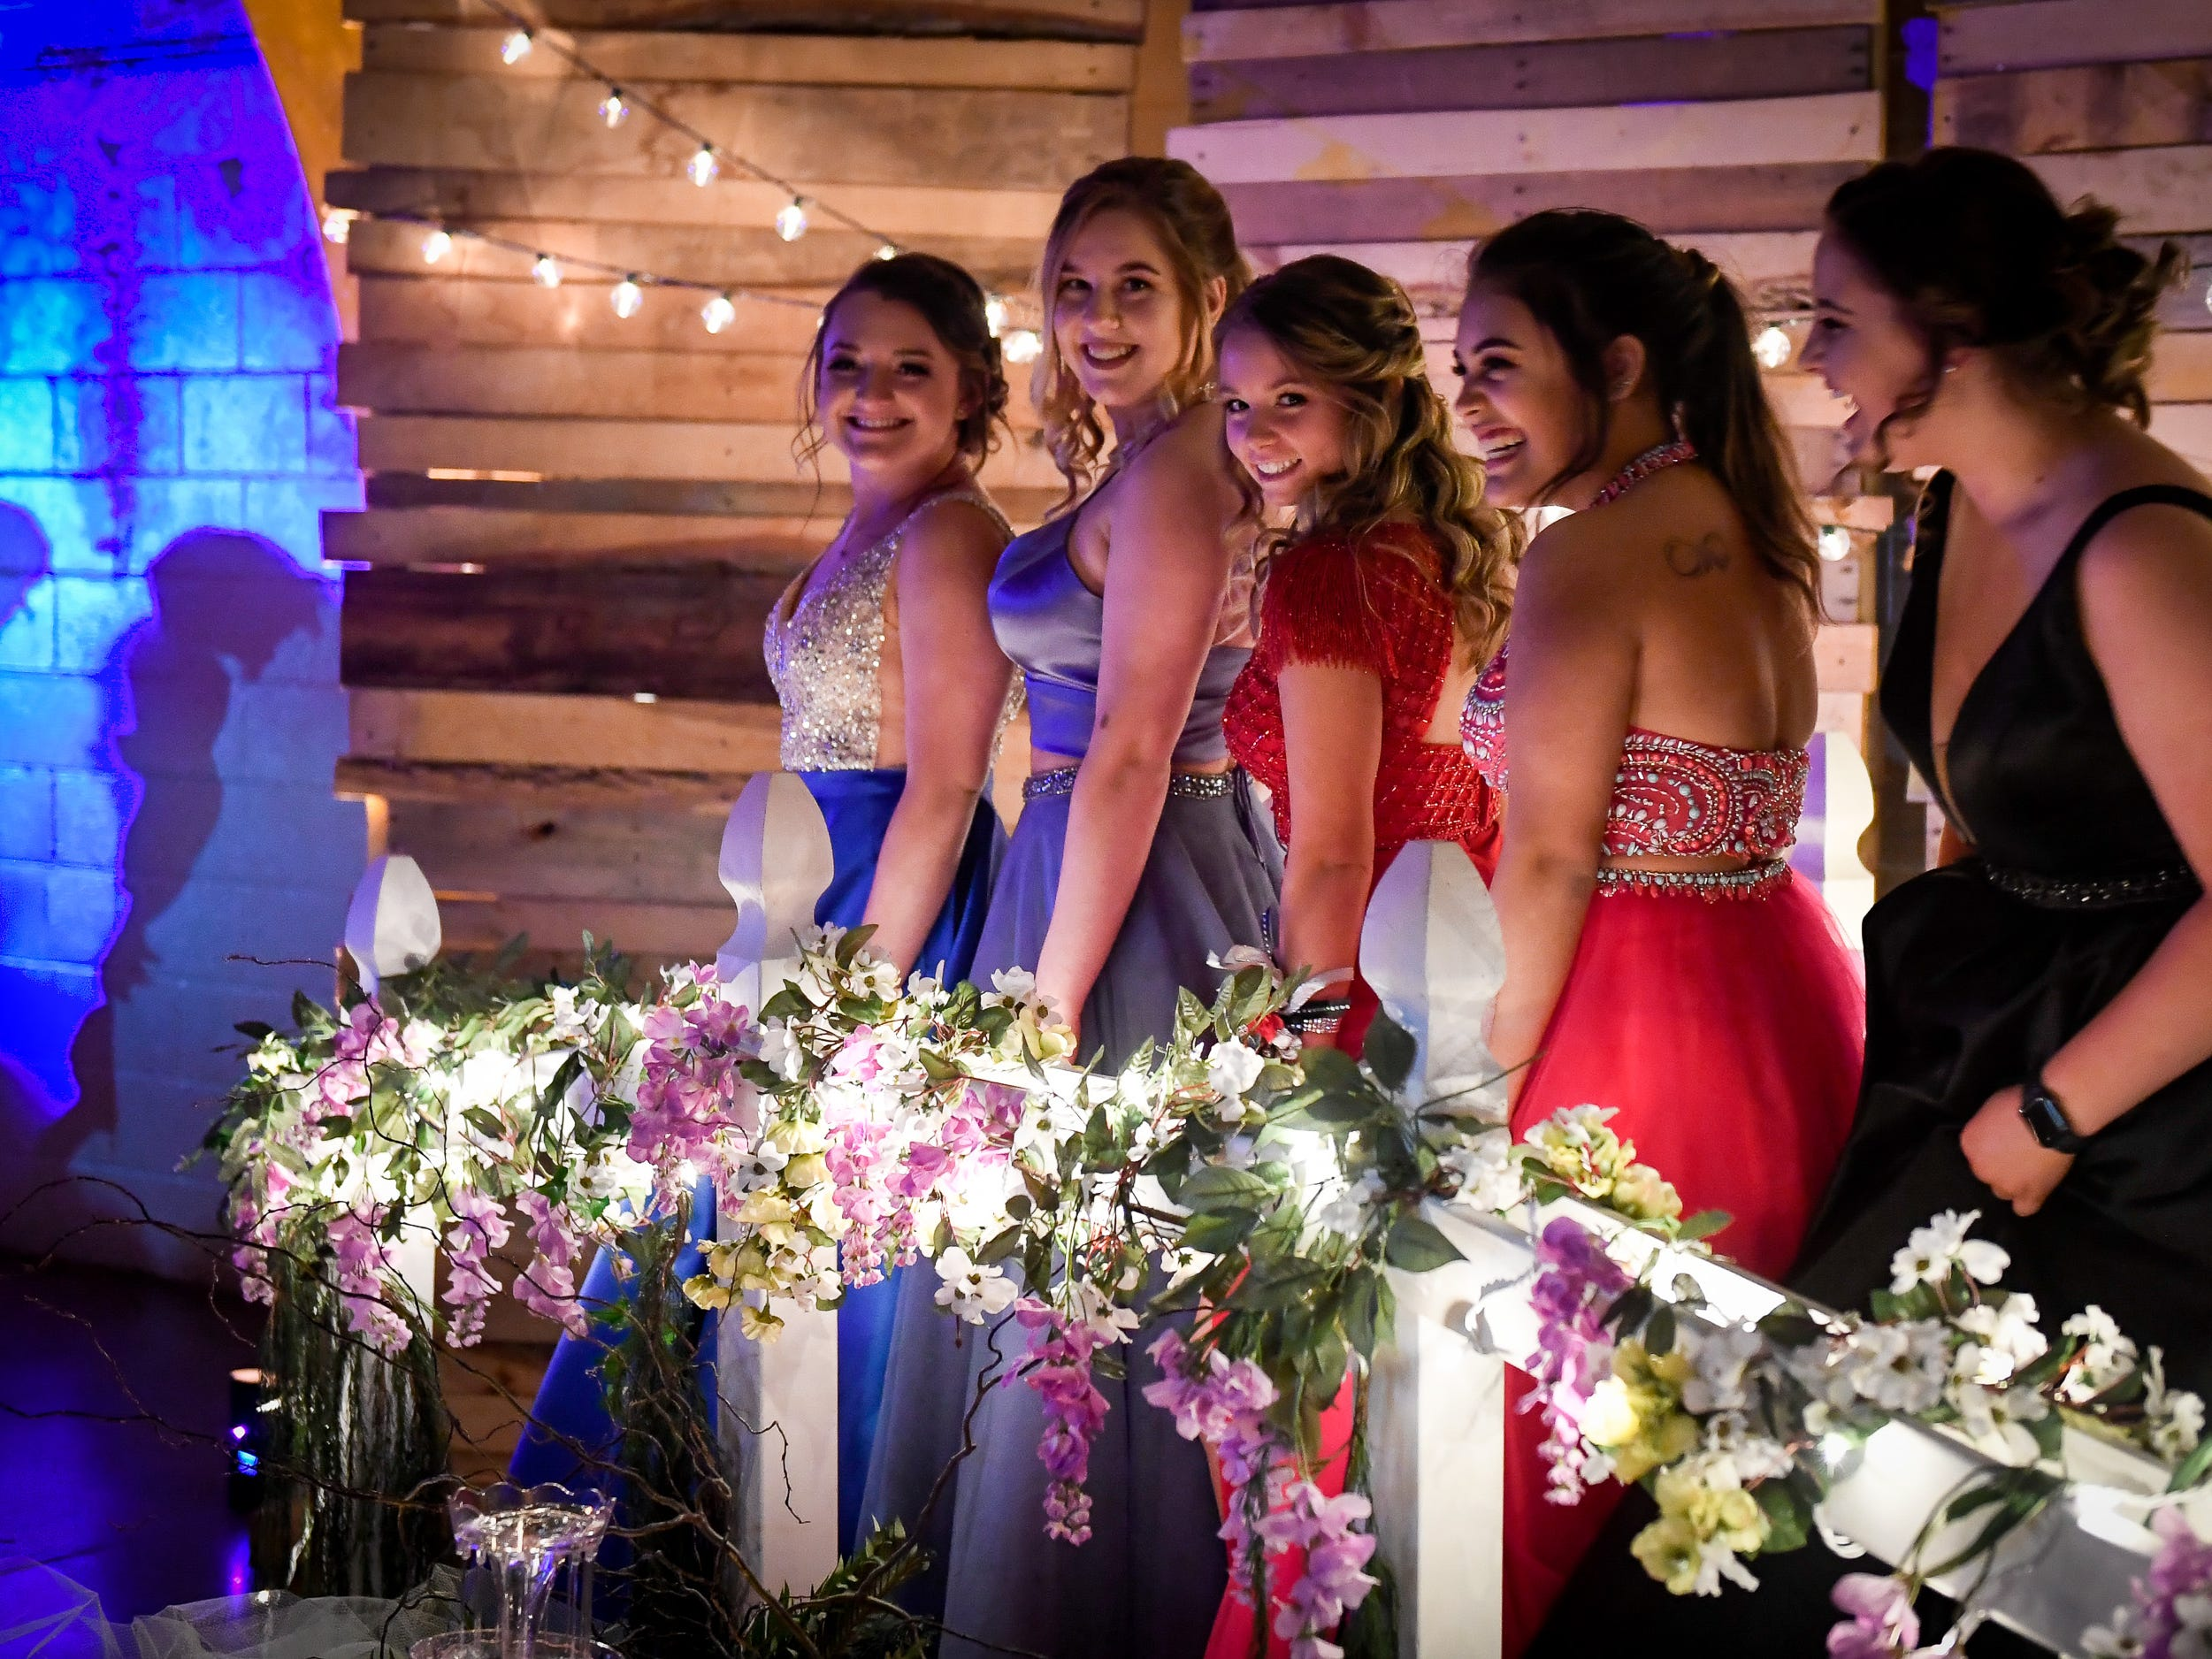 Posing for photos, left to right, Olivia Goebel, Berkeley Frankenberger, Jaicc Hedge, Molly Rivera and Lydia Lenfers at the Reitz High School Prom held at the Vanderburgh 4-H Center Saturday, April 13, 2019.